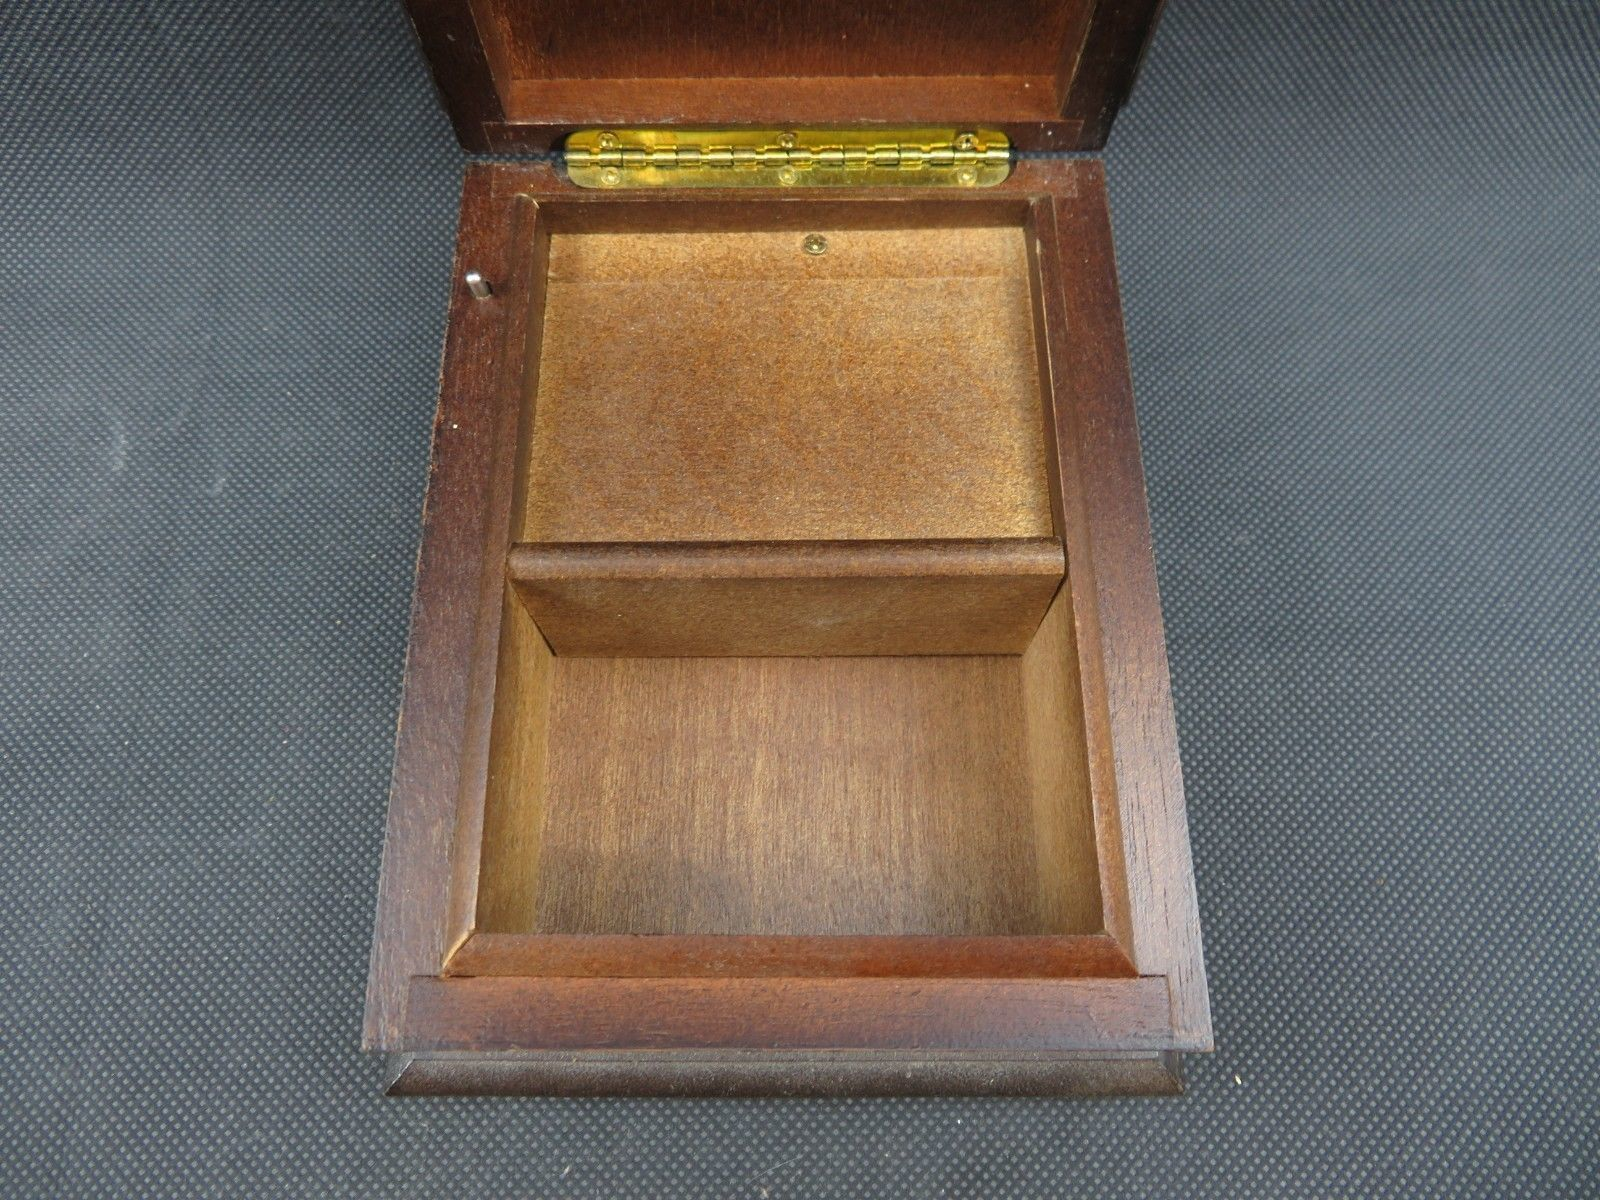 Vintage wood music box The San Francisco Music Box Company Mid Century deco